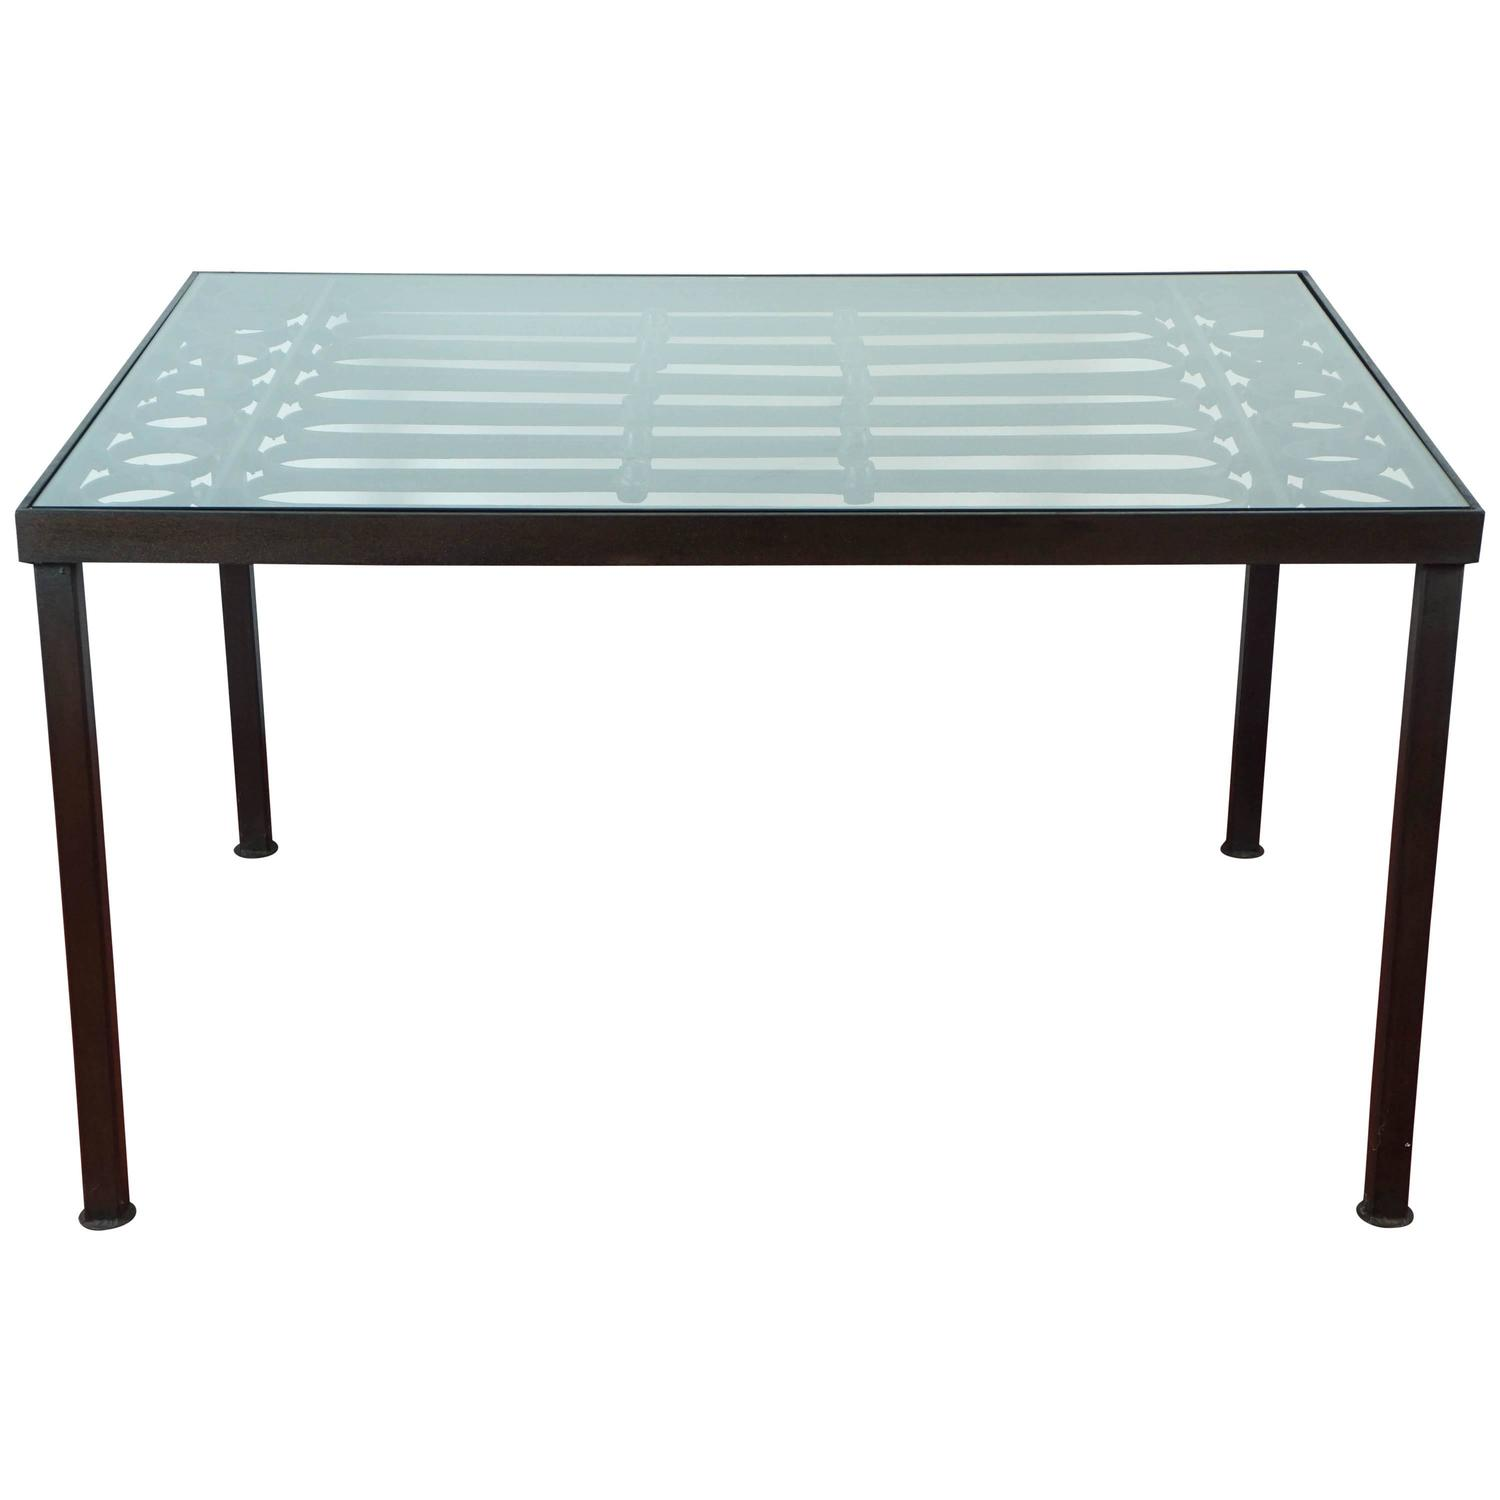 Wrought Iron and Glass IndoorOutdoor Dining Table For  : 2929563z from www.1stdibs.com size 1500 x 1500 jpeg 50kB